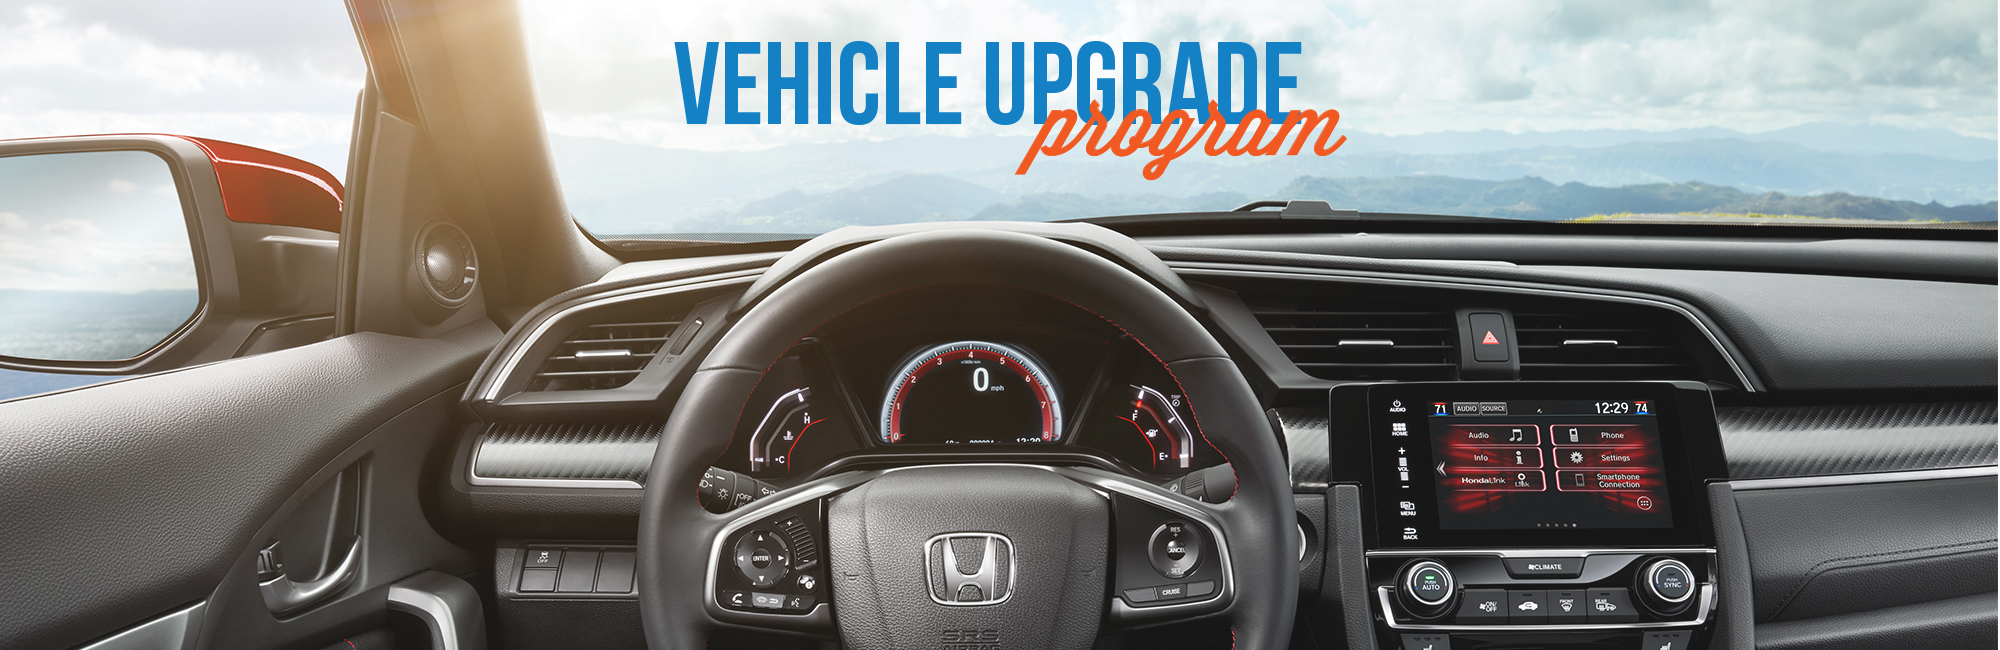 vehicle upgrade program